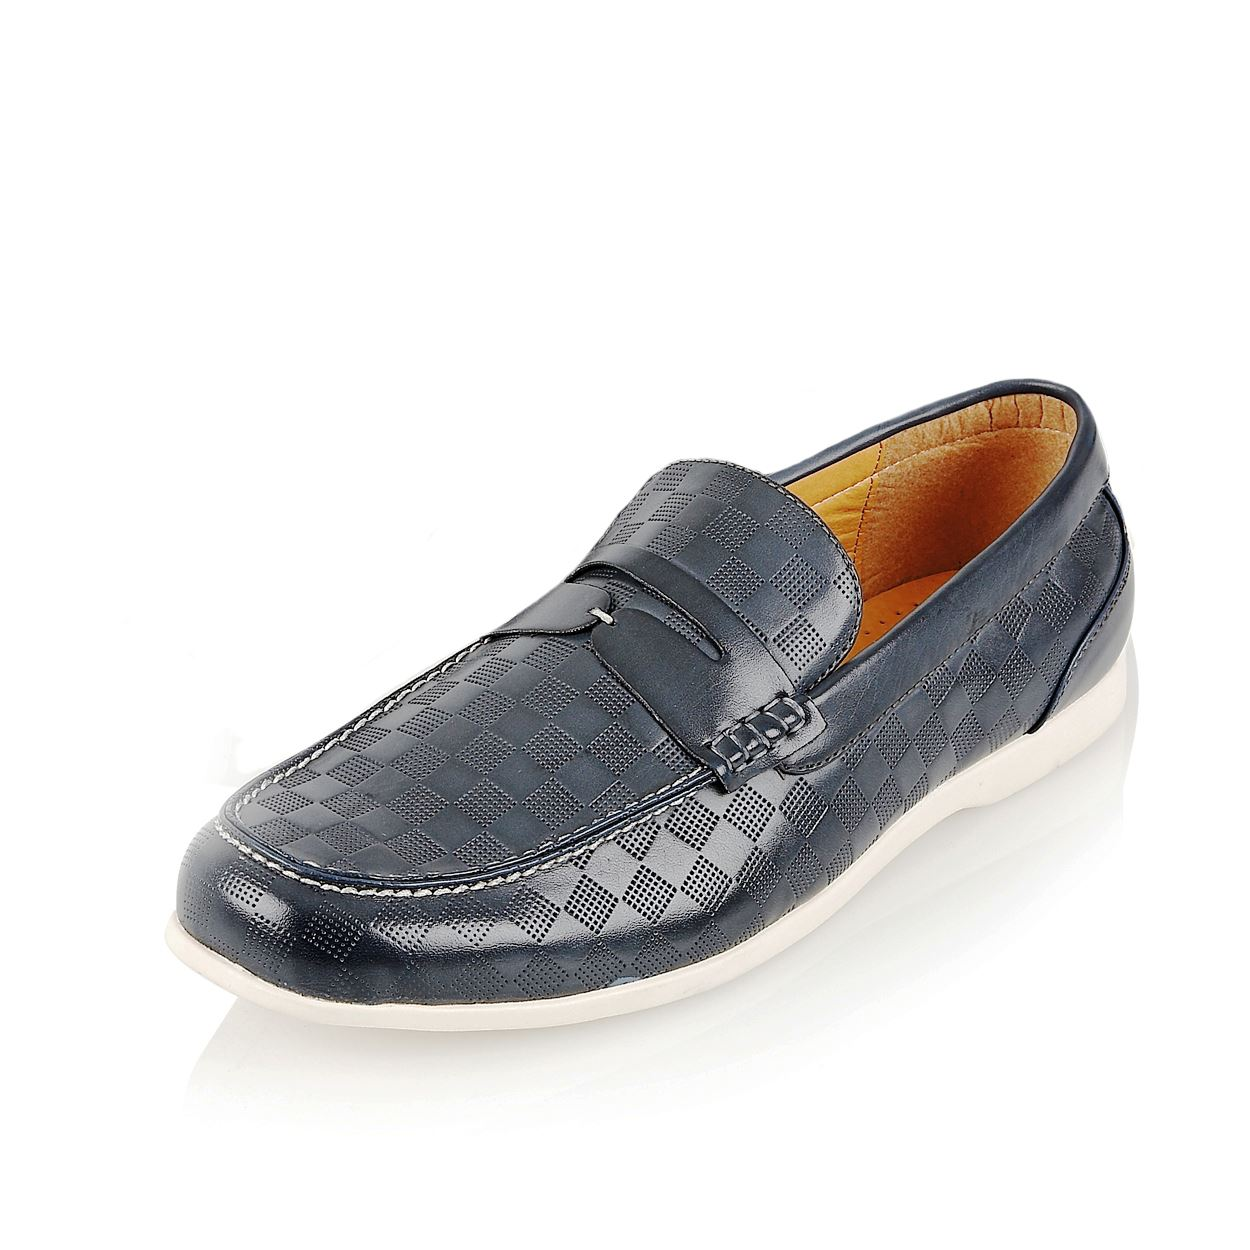 Mens Stylish Pu Leather Loafers Moccasins Casual Slip On Shoes Size   EBay